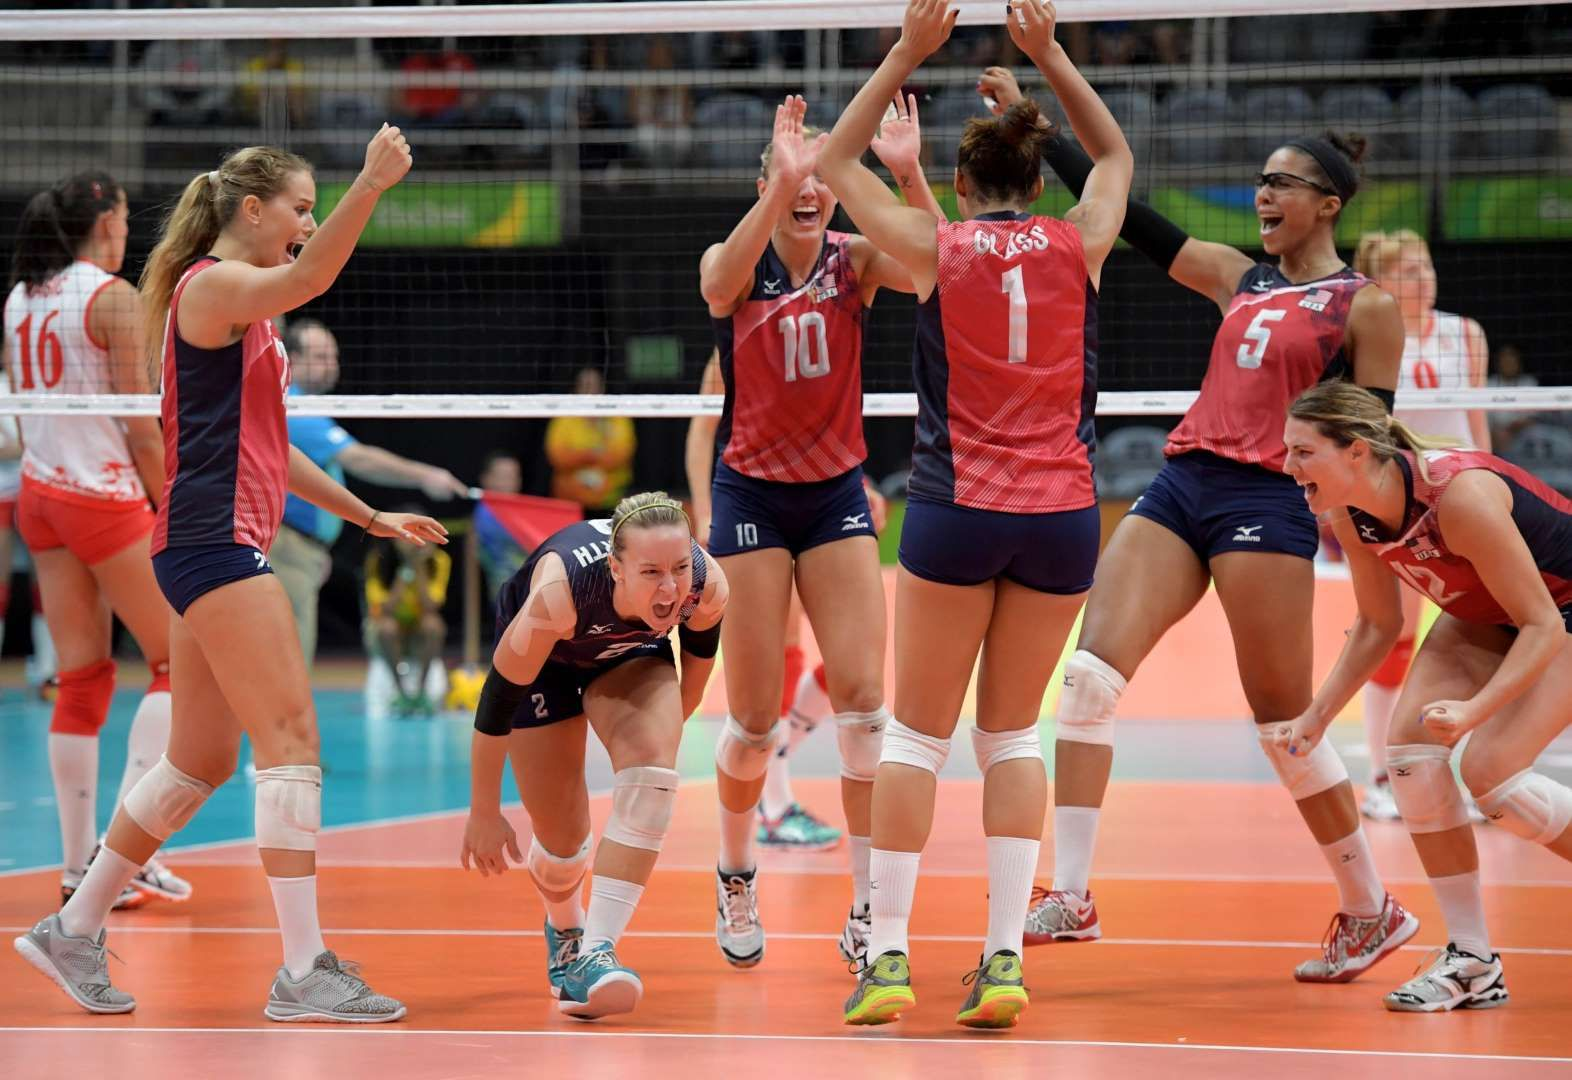 Usa Women S Volleyball Plaeyrs Celebrate During Their Match Against Serbia At Maracanazinho In The Rio 2016 Summ Olympics Summer Olympics 2016 Women Volleyball